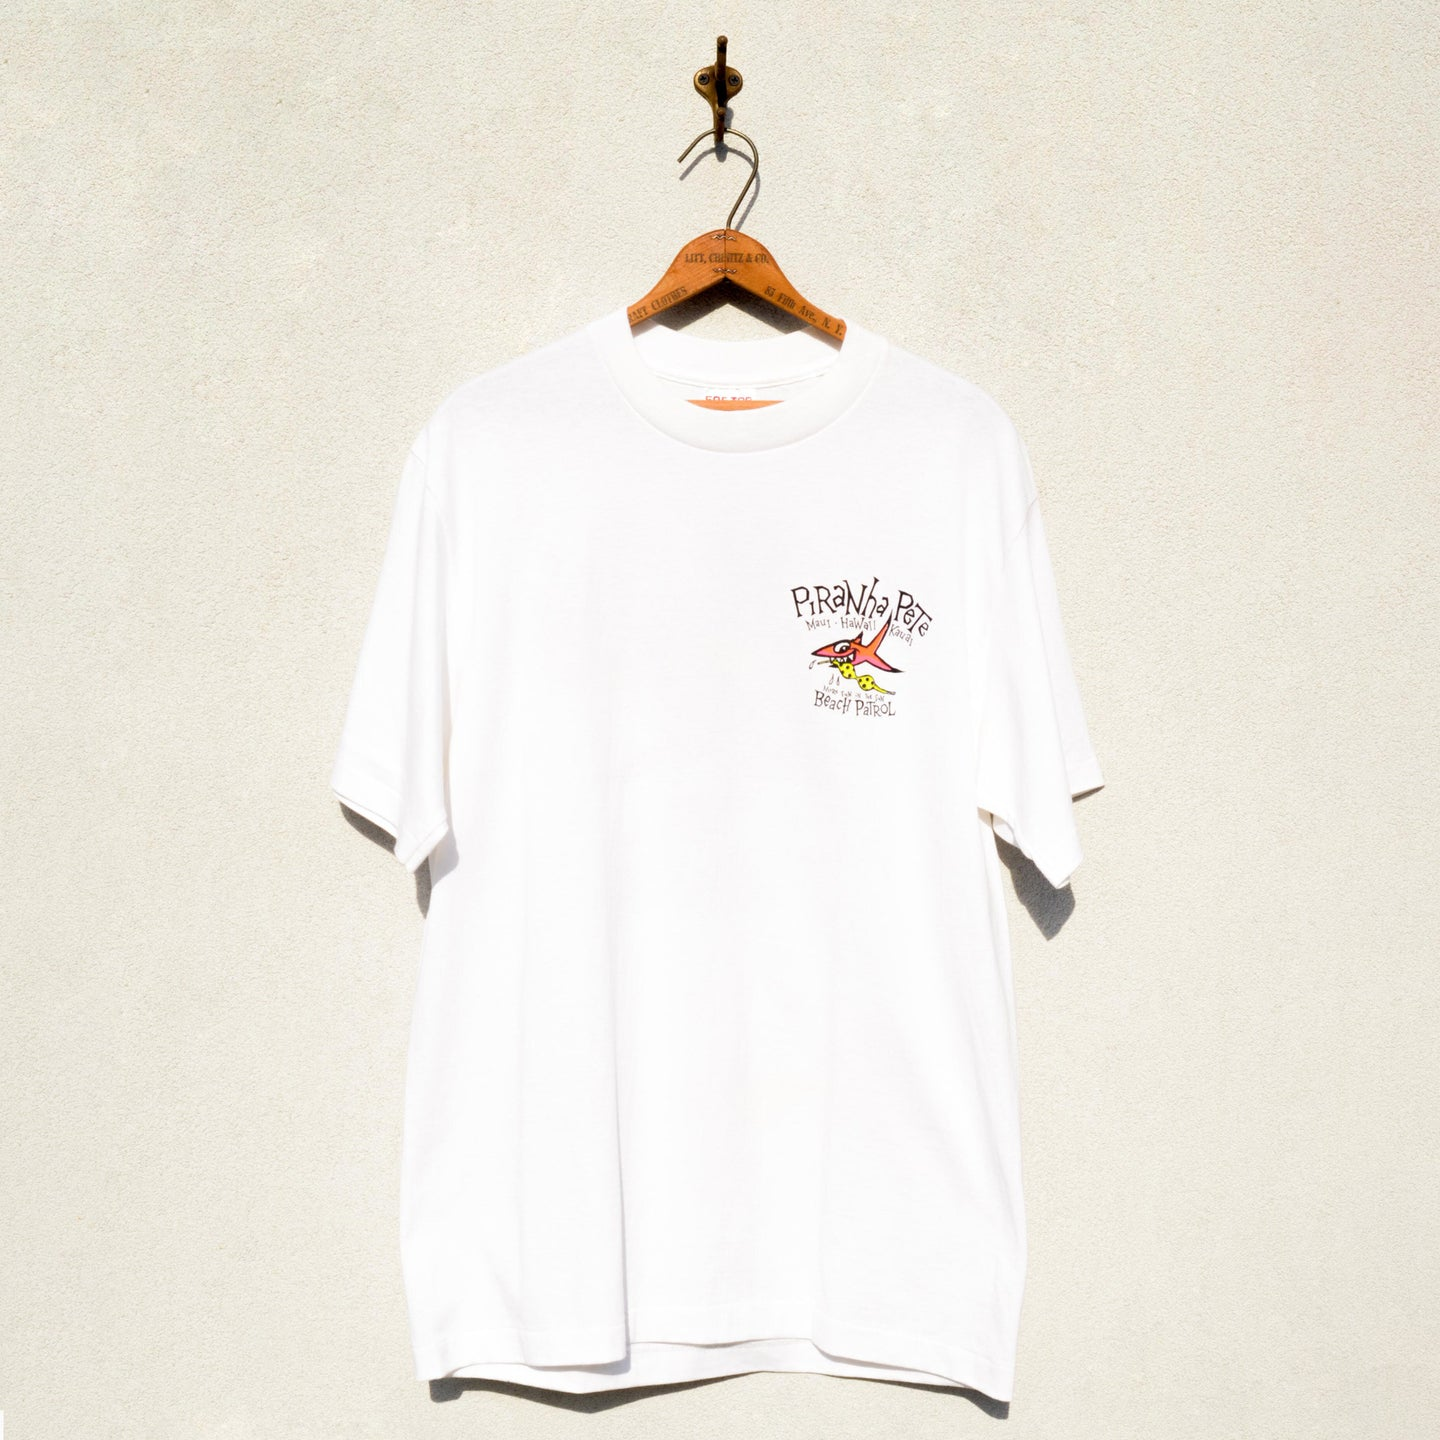 TEE JAYS - Piranha Pete Hawaii Souvenir Tee Shirt